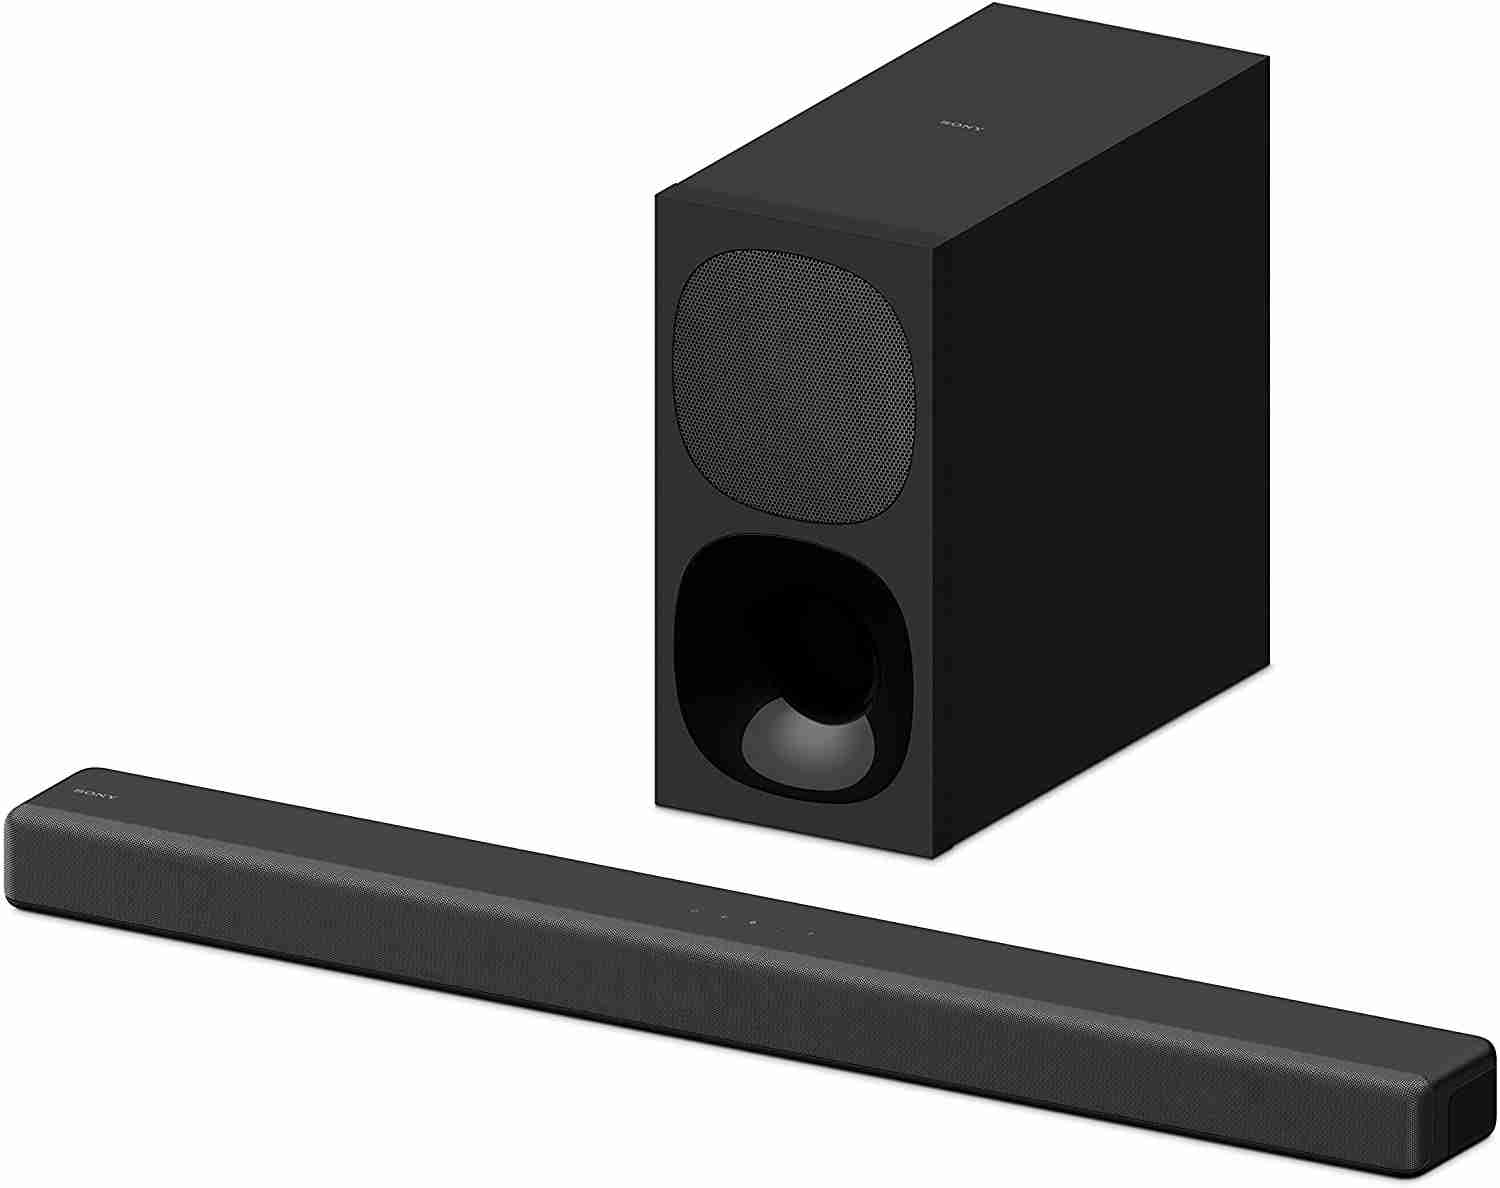 Sony HT-G700 - Soundbar